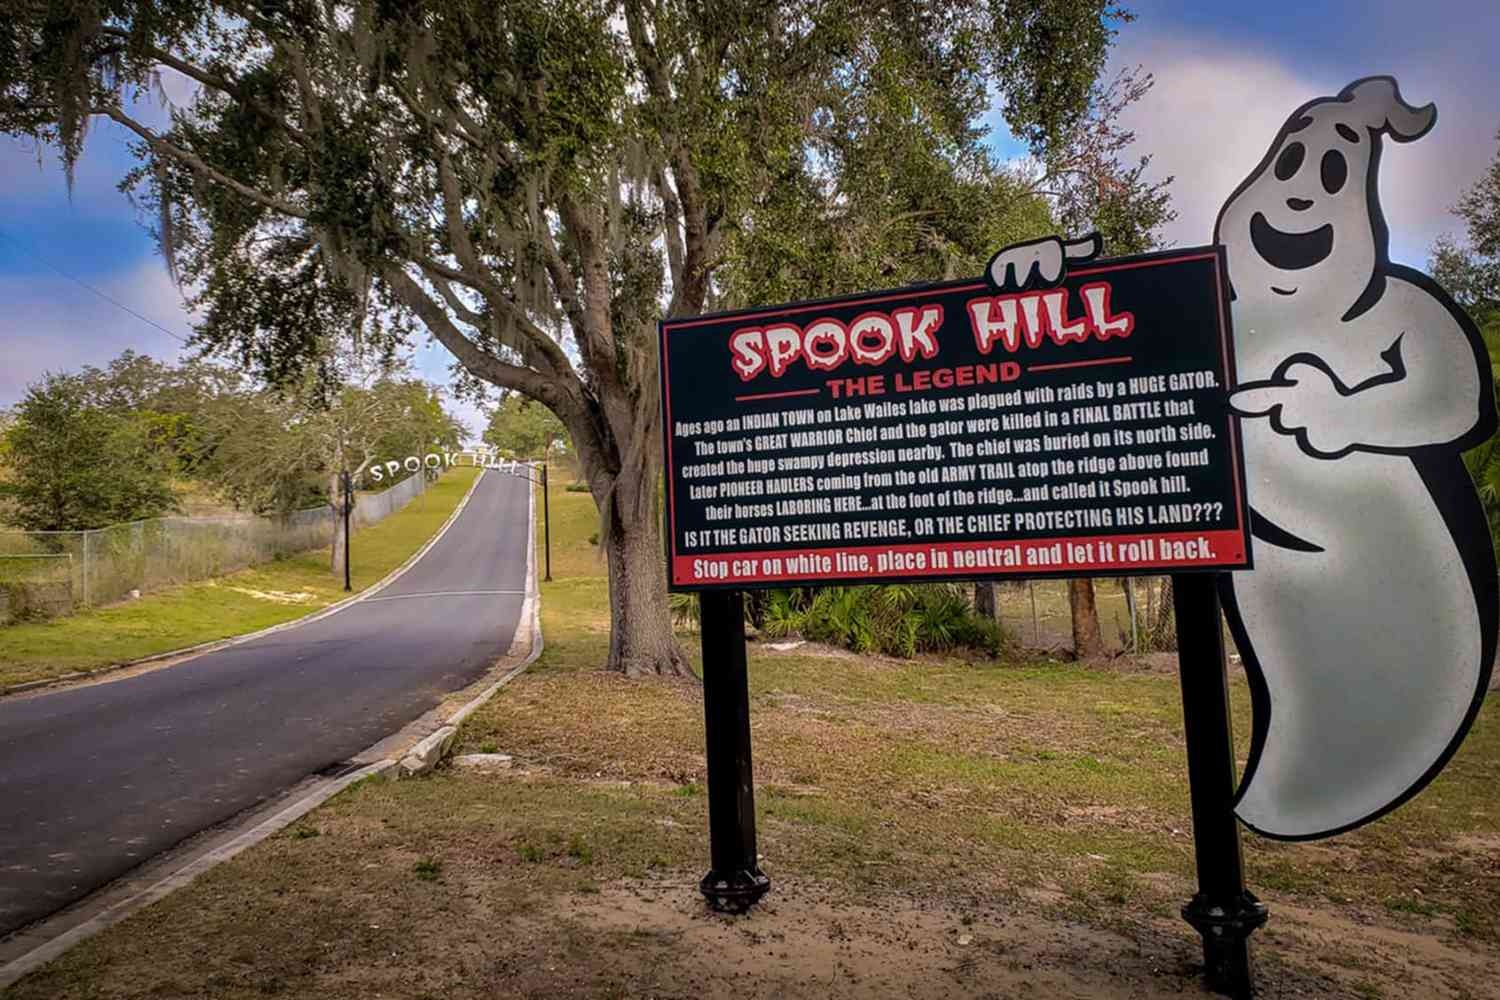 A ghost holding a sign explaining the legend of Spook Hill at the foot of the hill